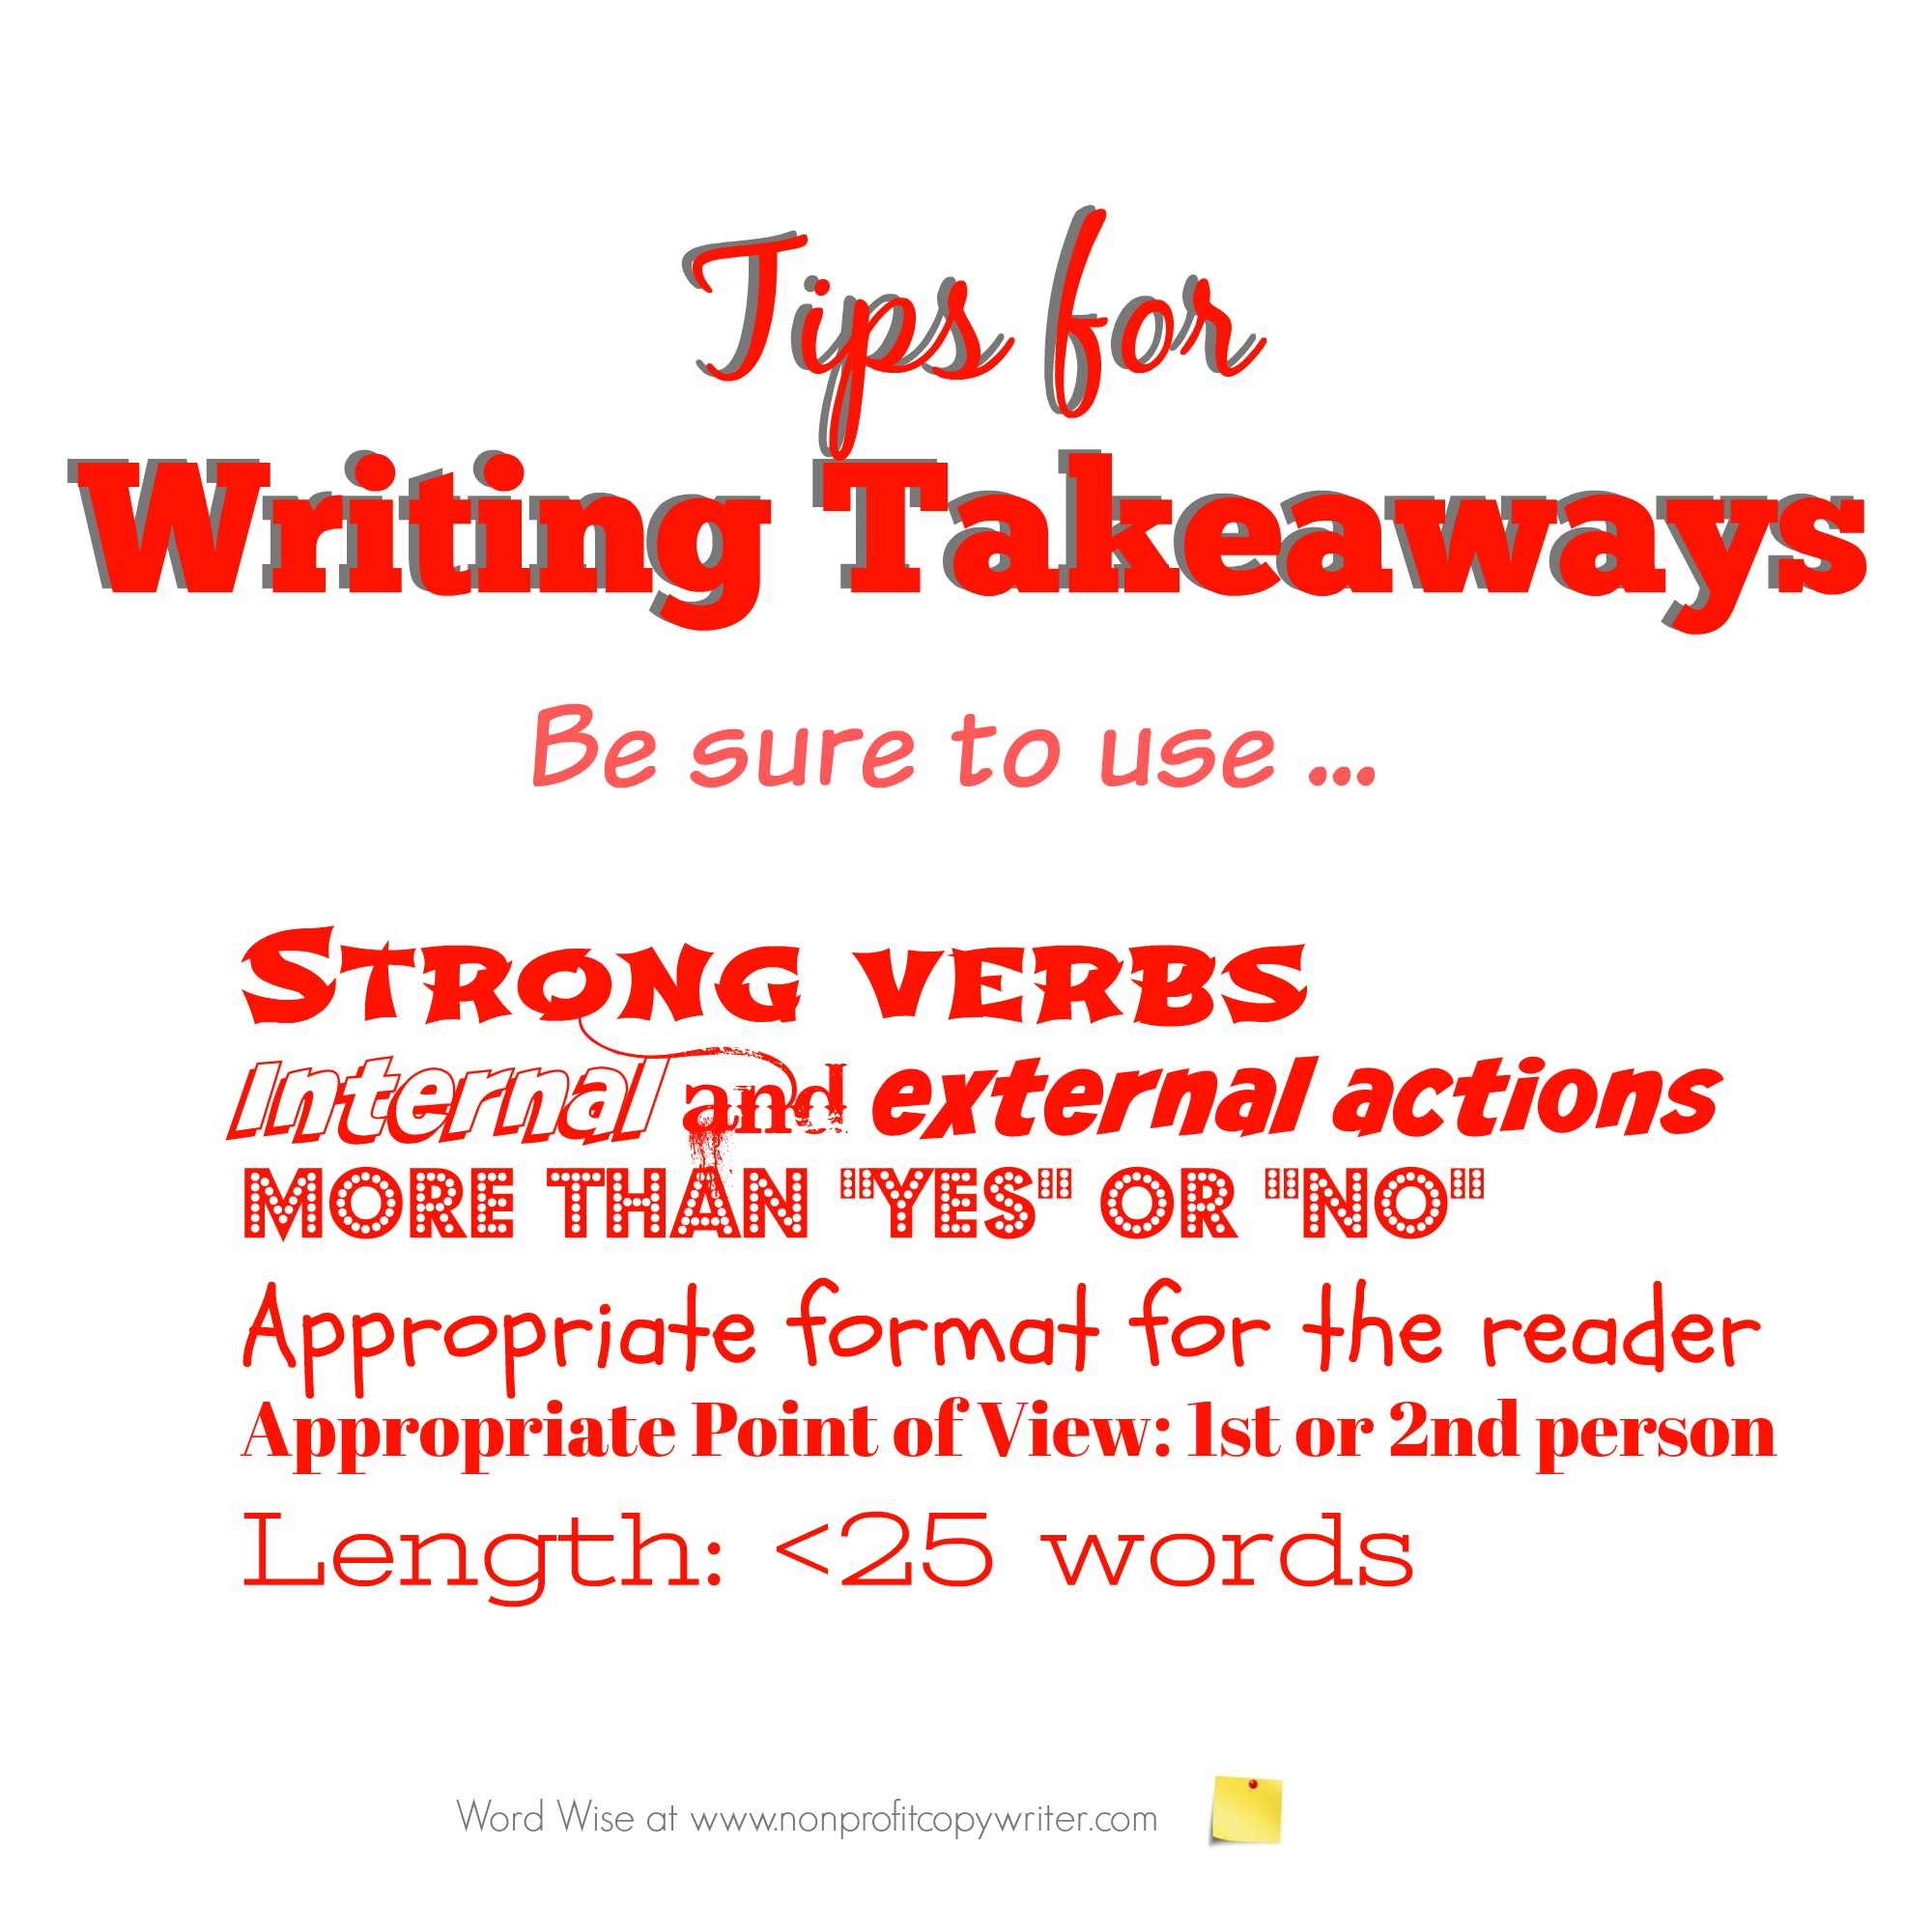 Tips for writing takeaways for devotionals with Word Wise at Nonprofit Copywriter